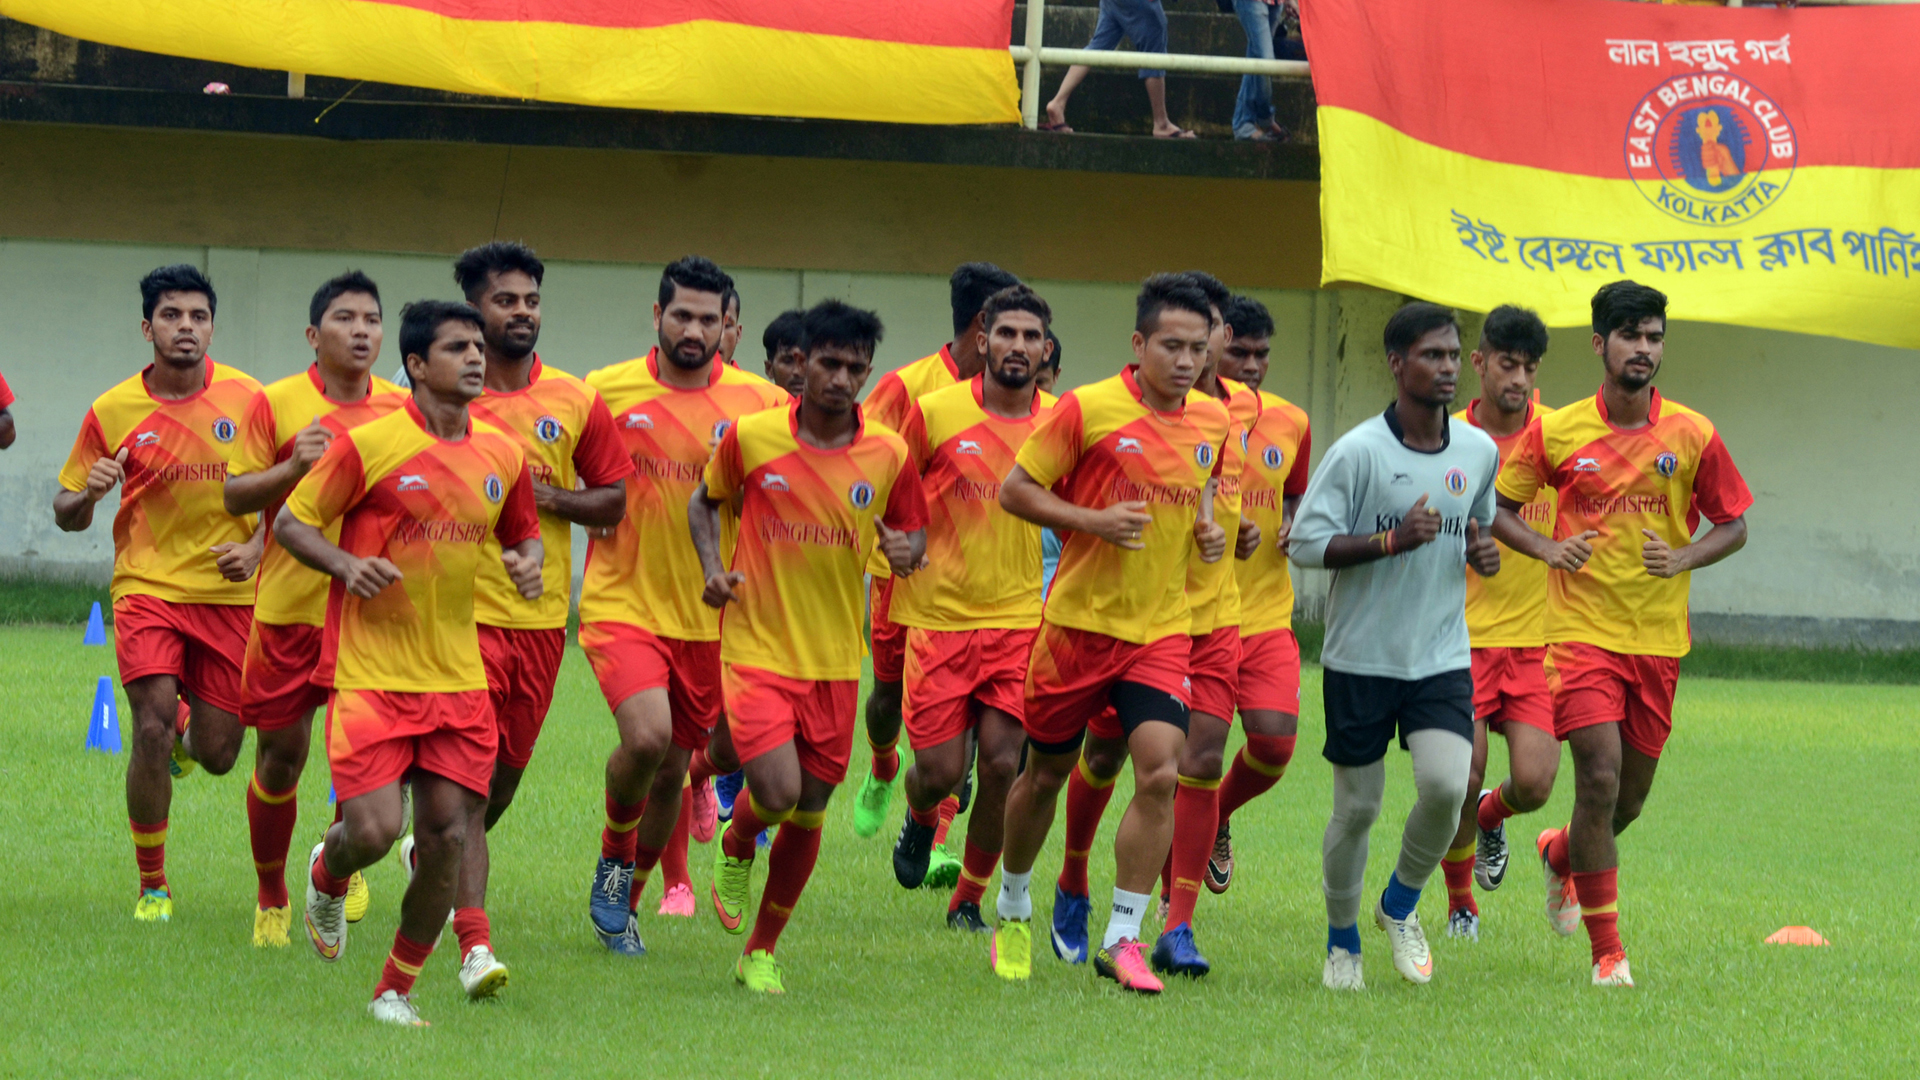 I-League 2016-17 Team Profile: East Bengal FC - Red and Gold's last chance to win the title ...